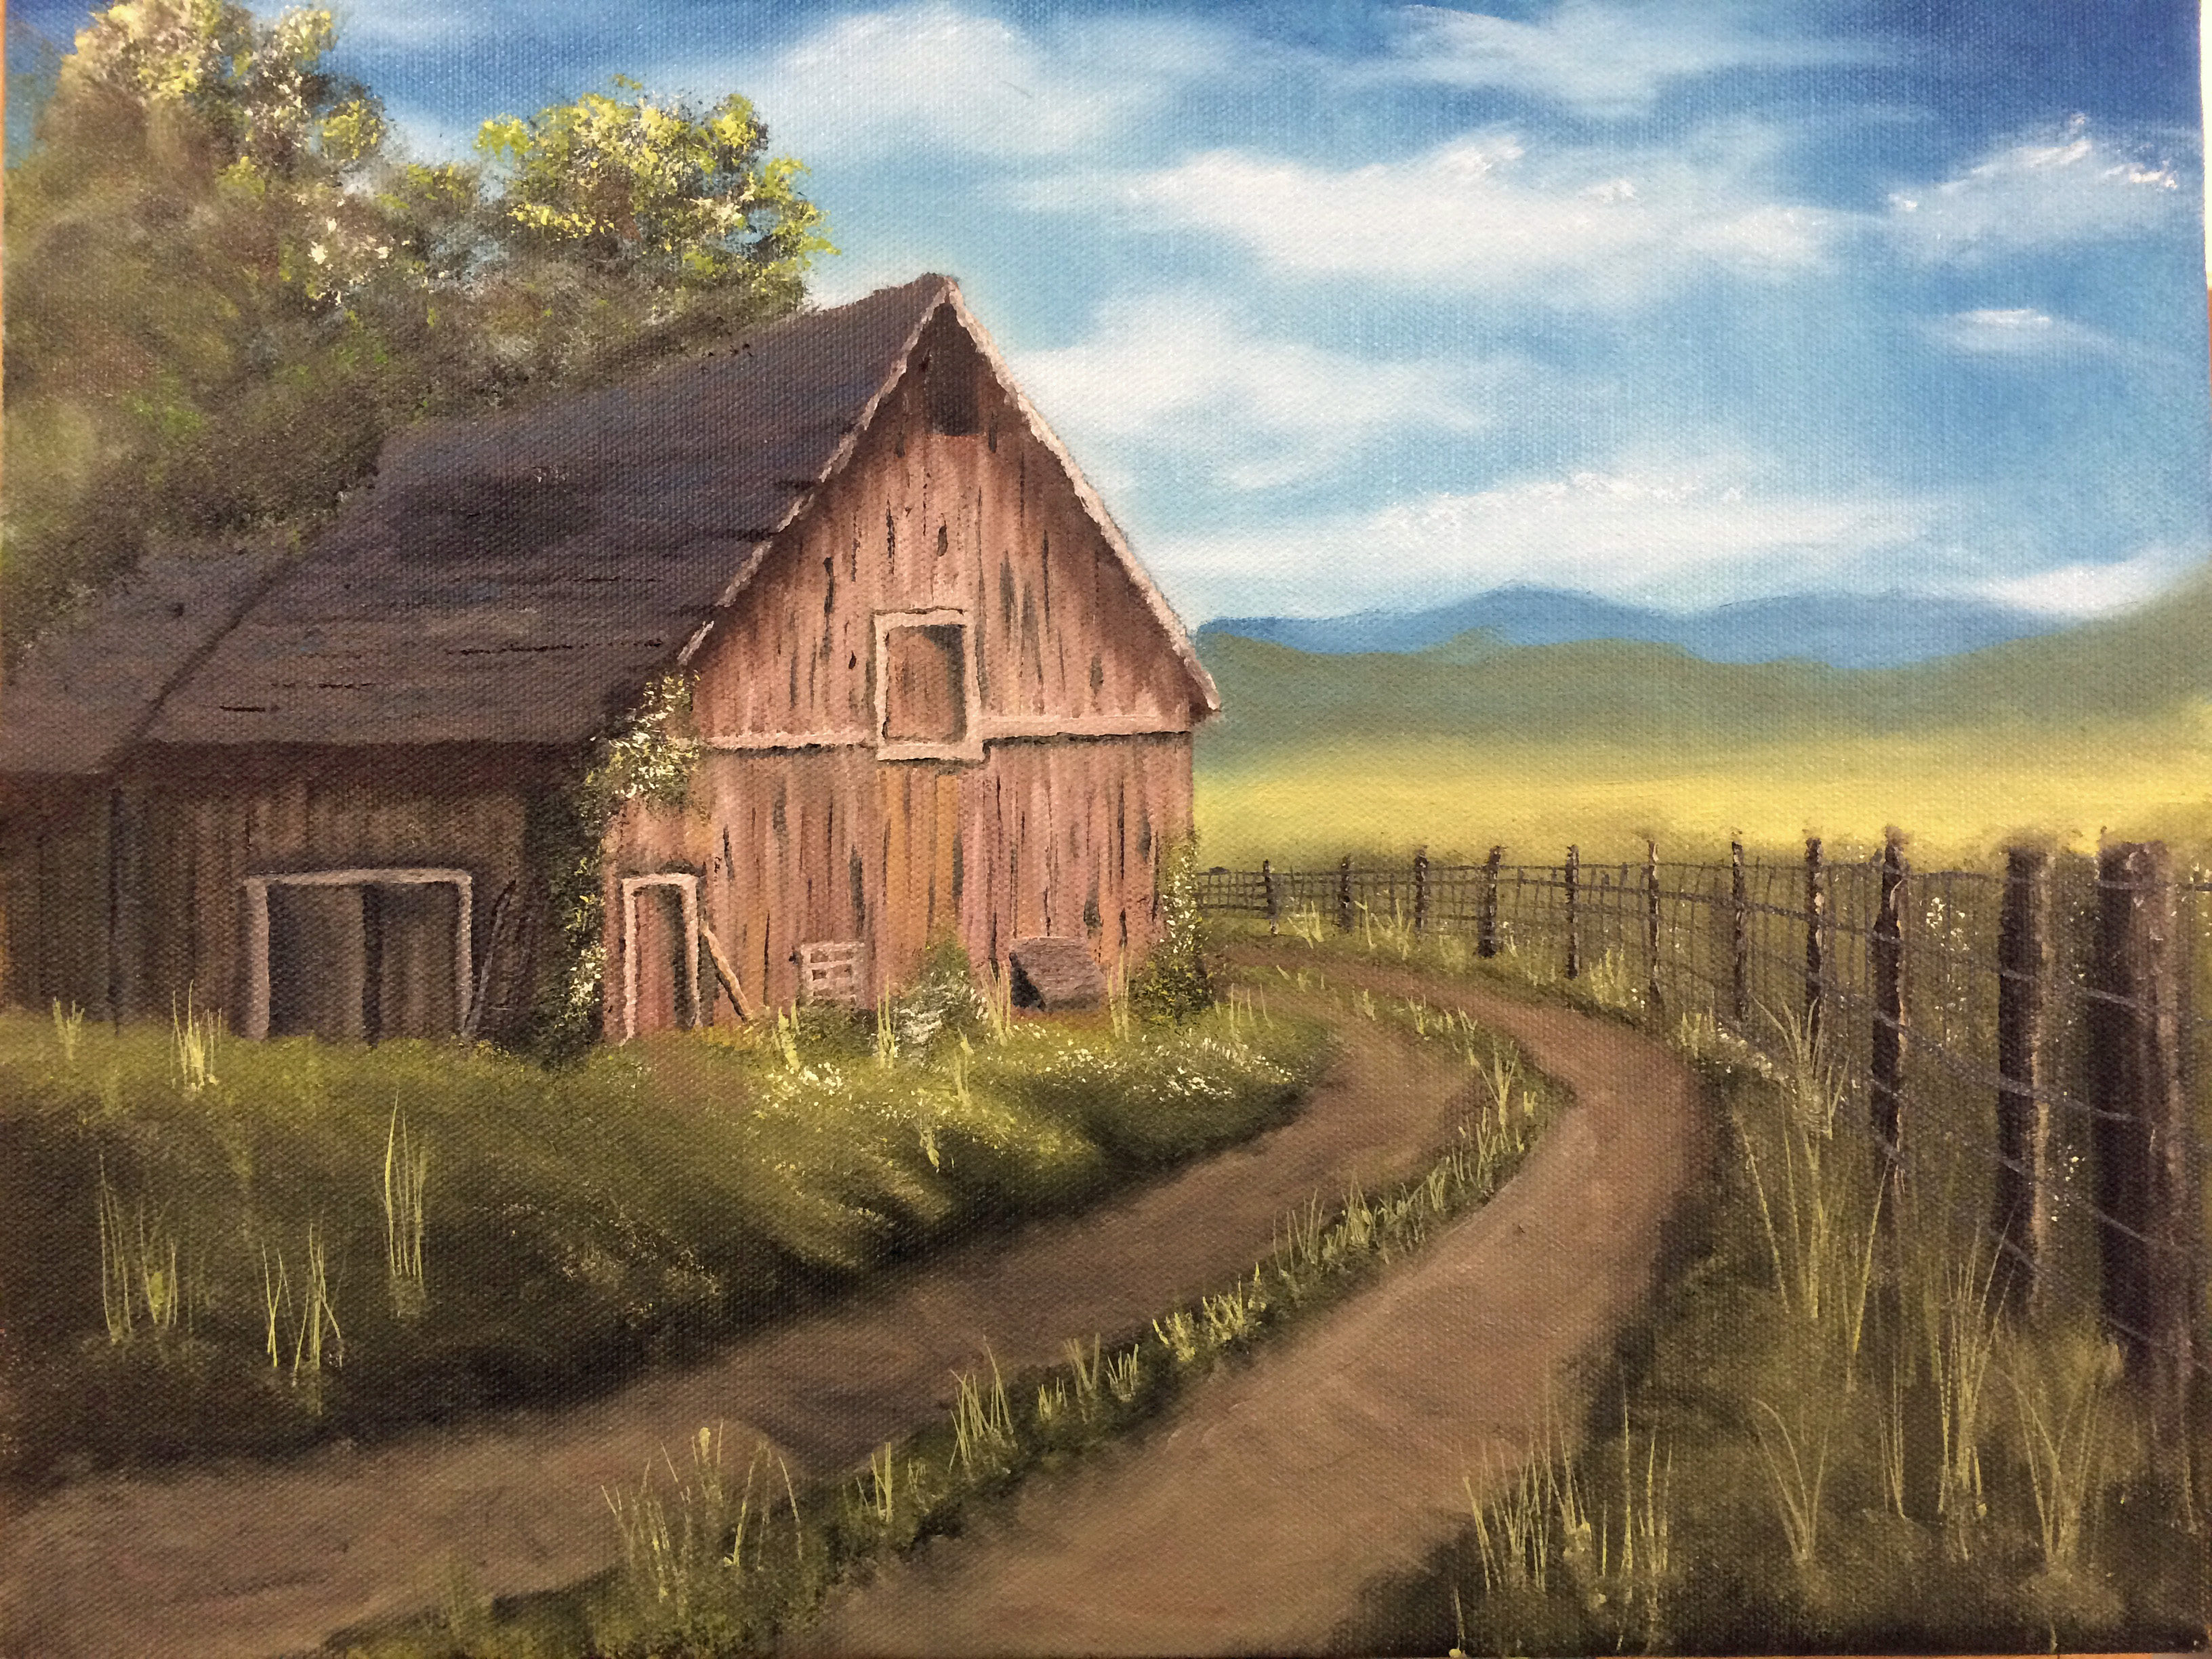 During the class that artist Kevin Hill held in Florida I painted this barn scene based on his work.